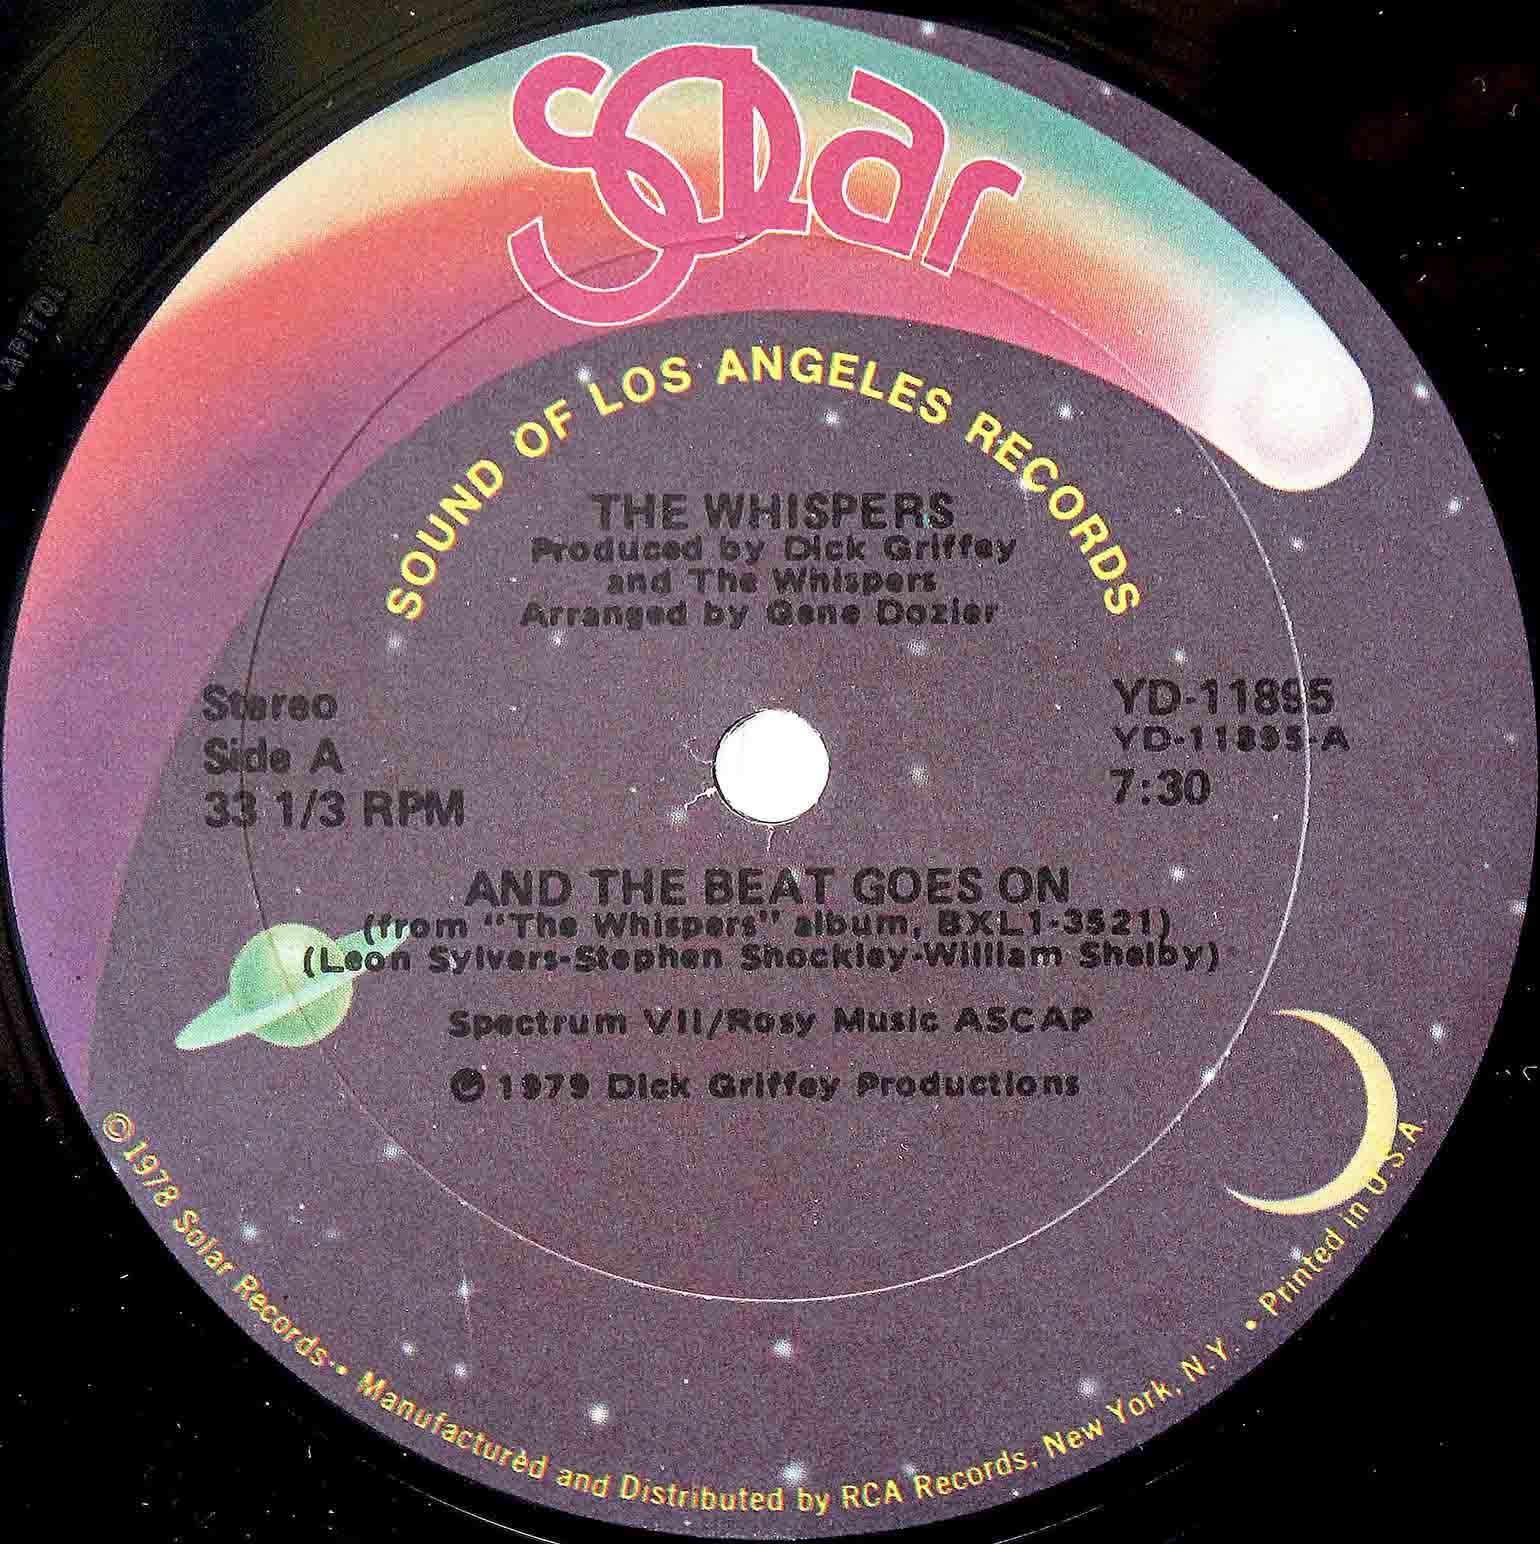 The Whispers - And the Beat Goes On 03